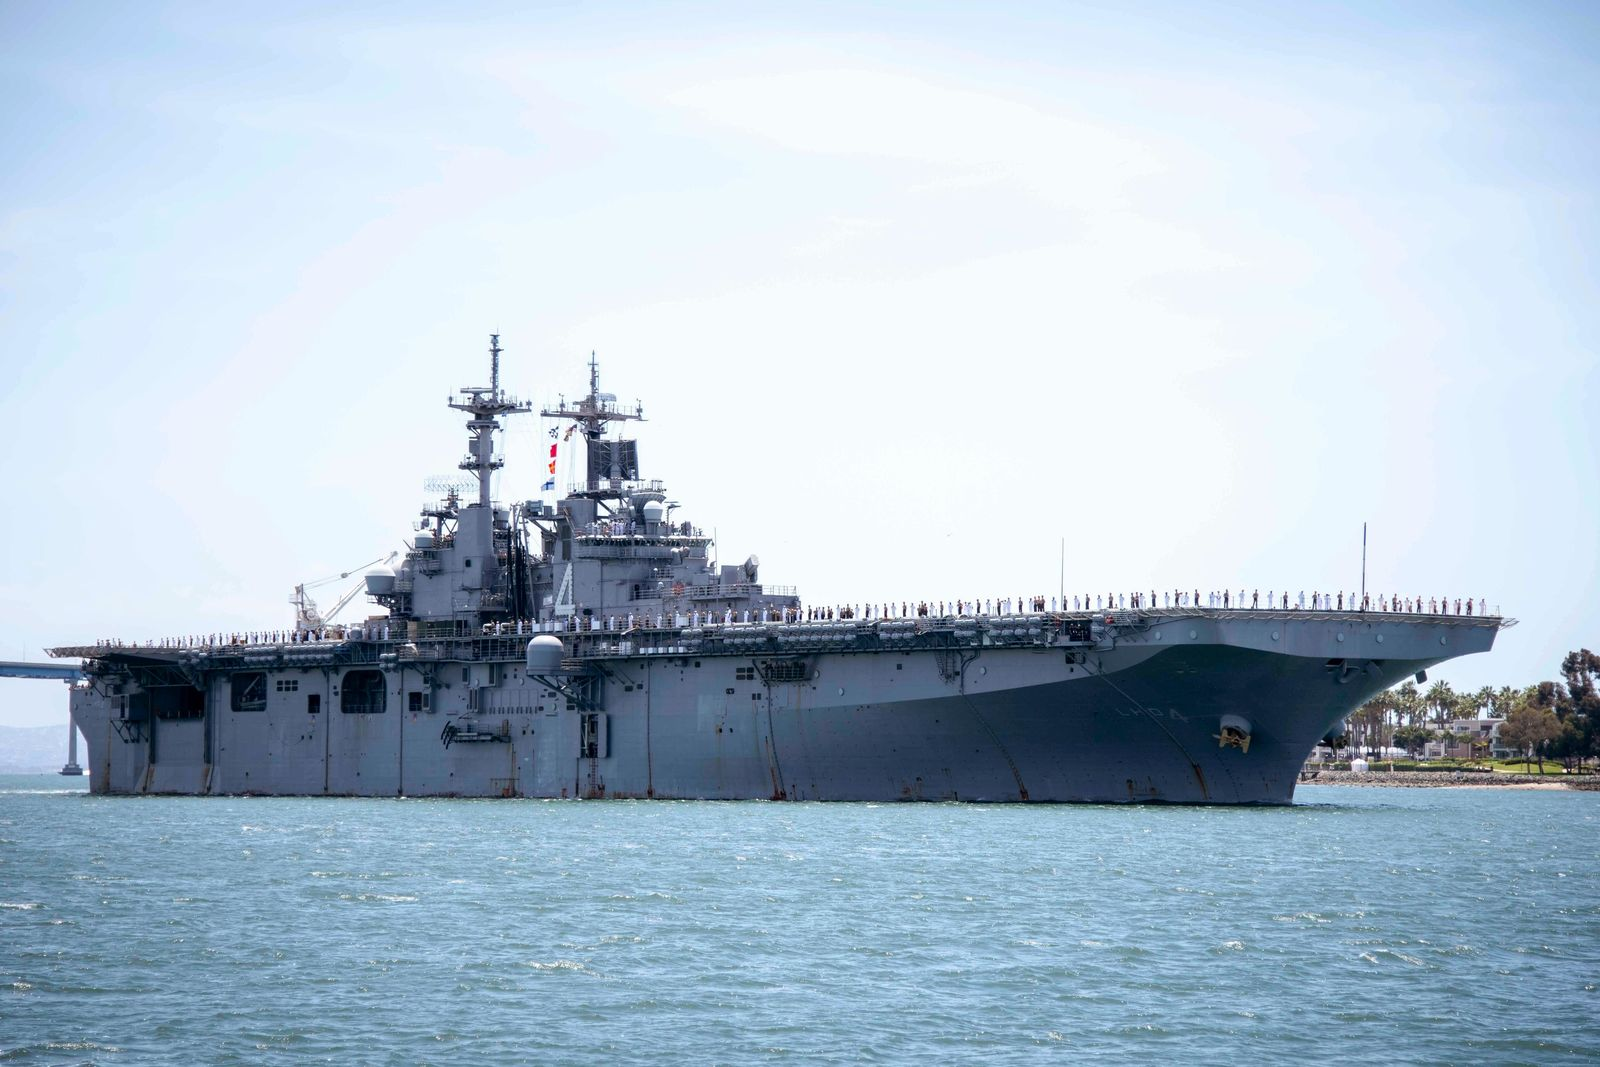 In this May 1, 2019, photo provided by the U.S. Navy, the amphibious assault ship USS Boxer (LHD 4) transits the San Diego Bay in San Diego, Calif. President Donald Trump says the USS Boxer destroyed an Iranian drone in the Strait of Hormuz amid heightened tensions between the two countries.{ } (Mass Communication Specialist 2nd Class Jesse Monford/U.S. Navy via AP)